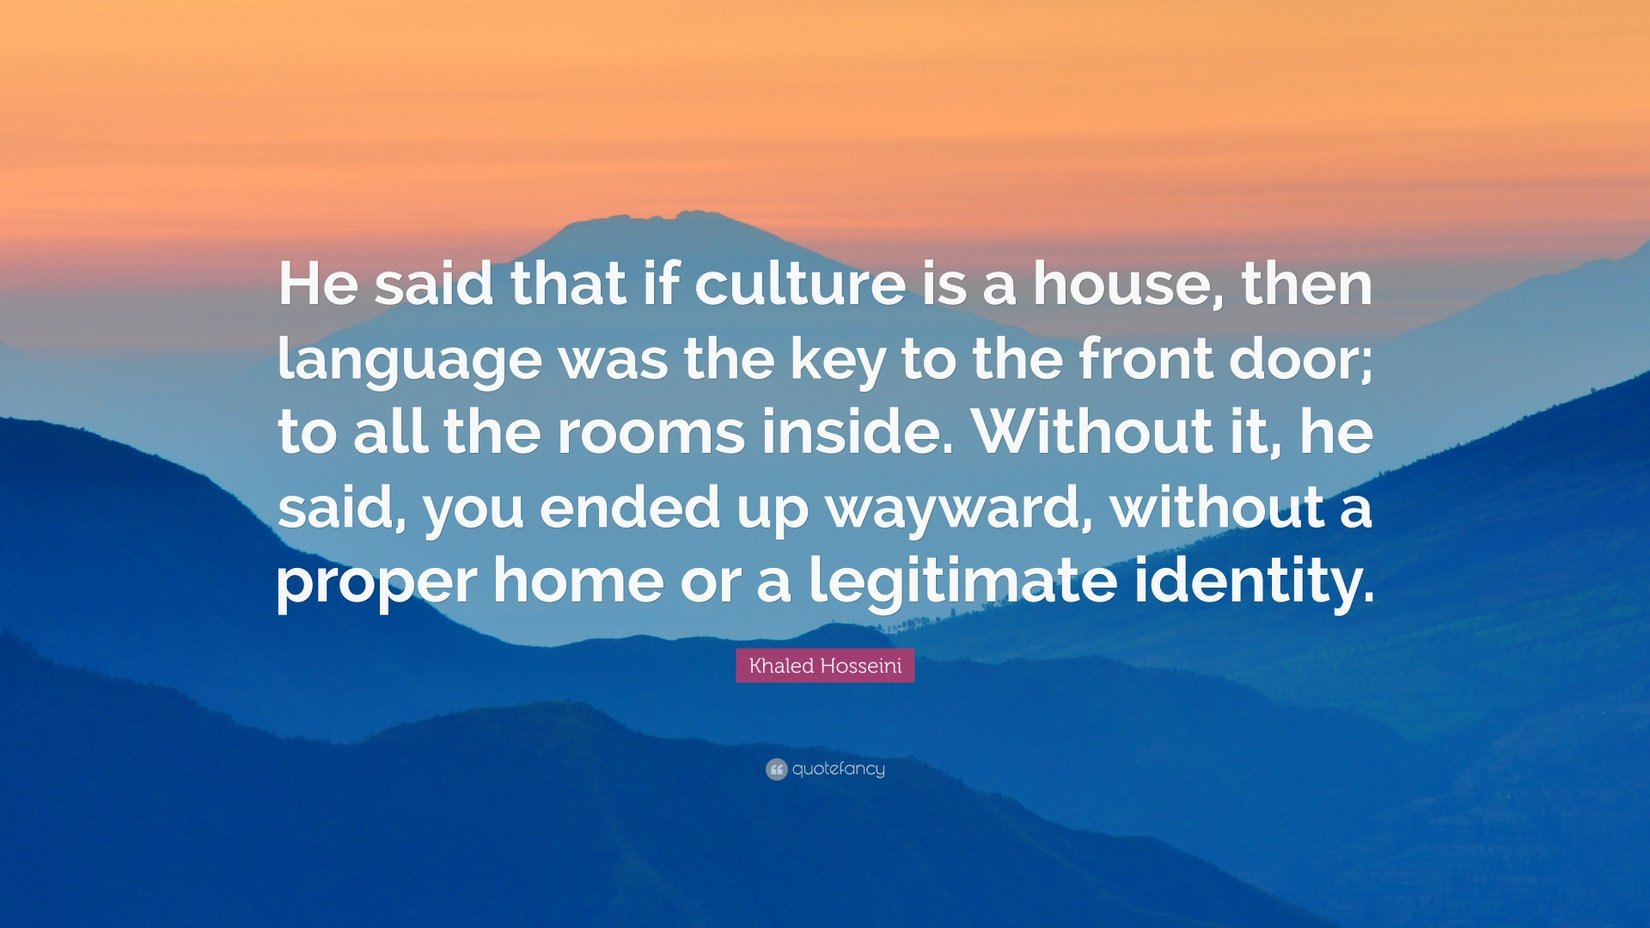 263141-Khaled-Hosseini-Quote-He-said-that-if-culture-is-a-house-then.jpeg